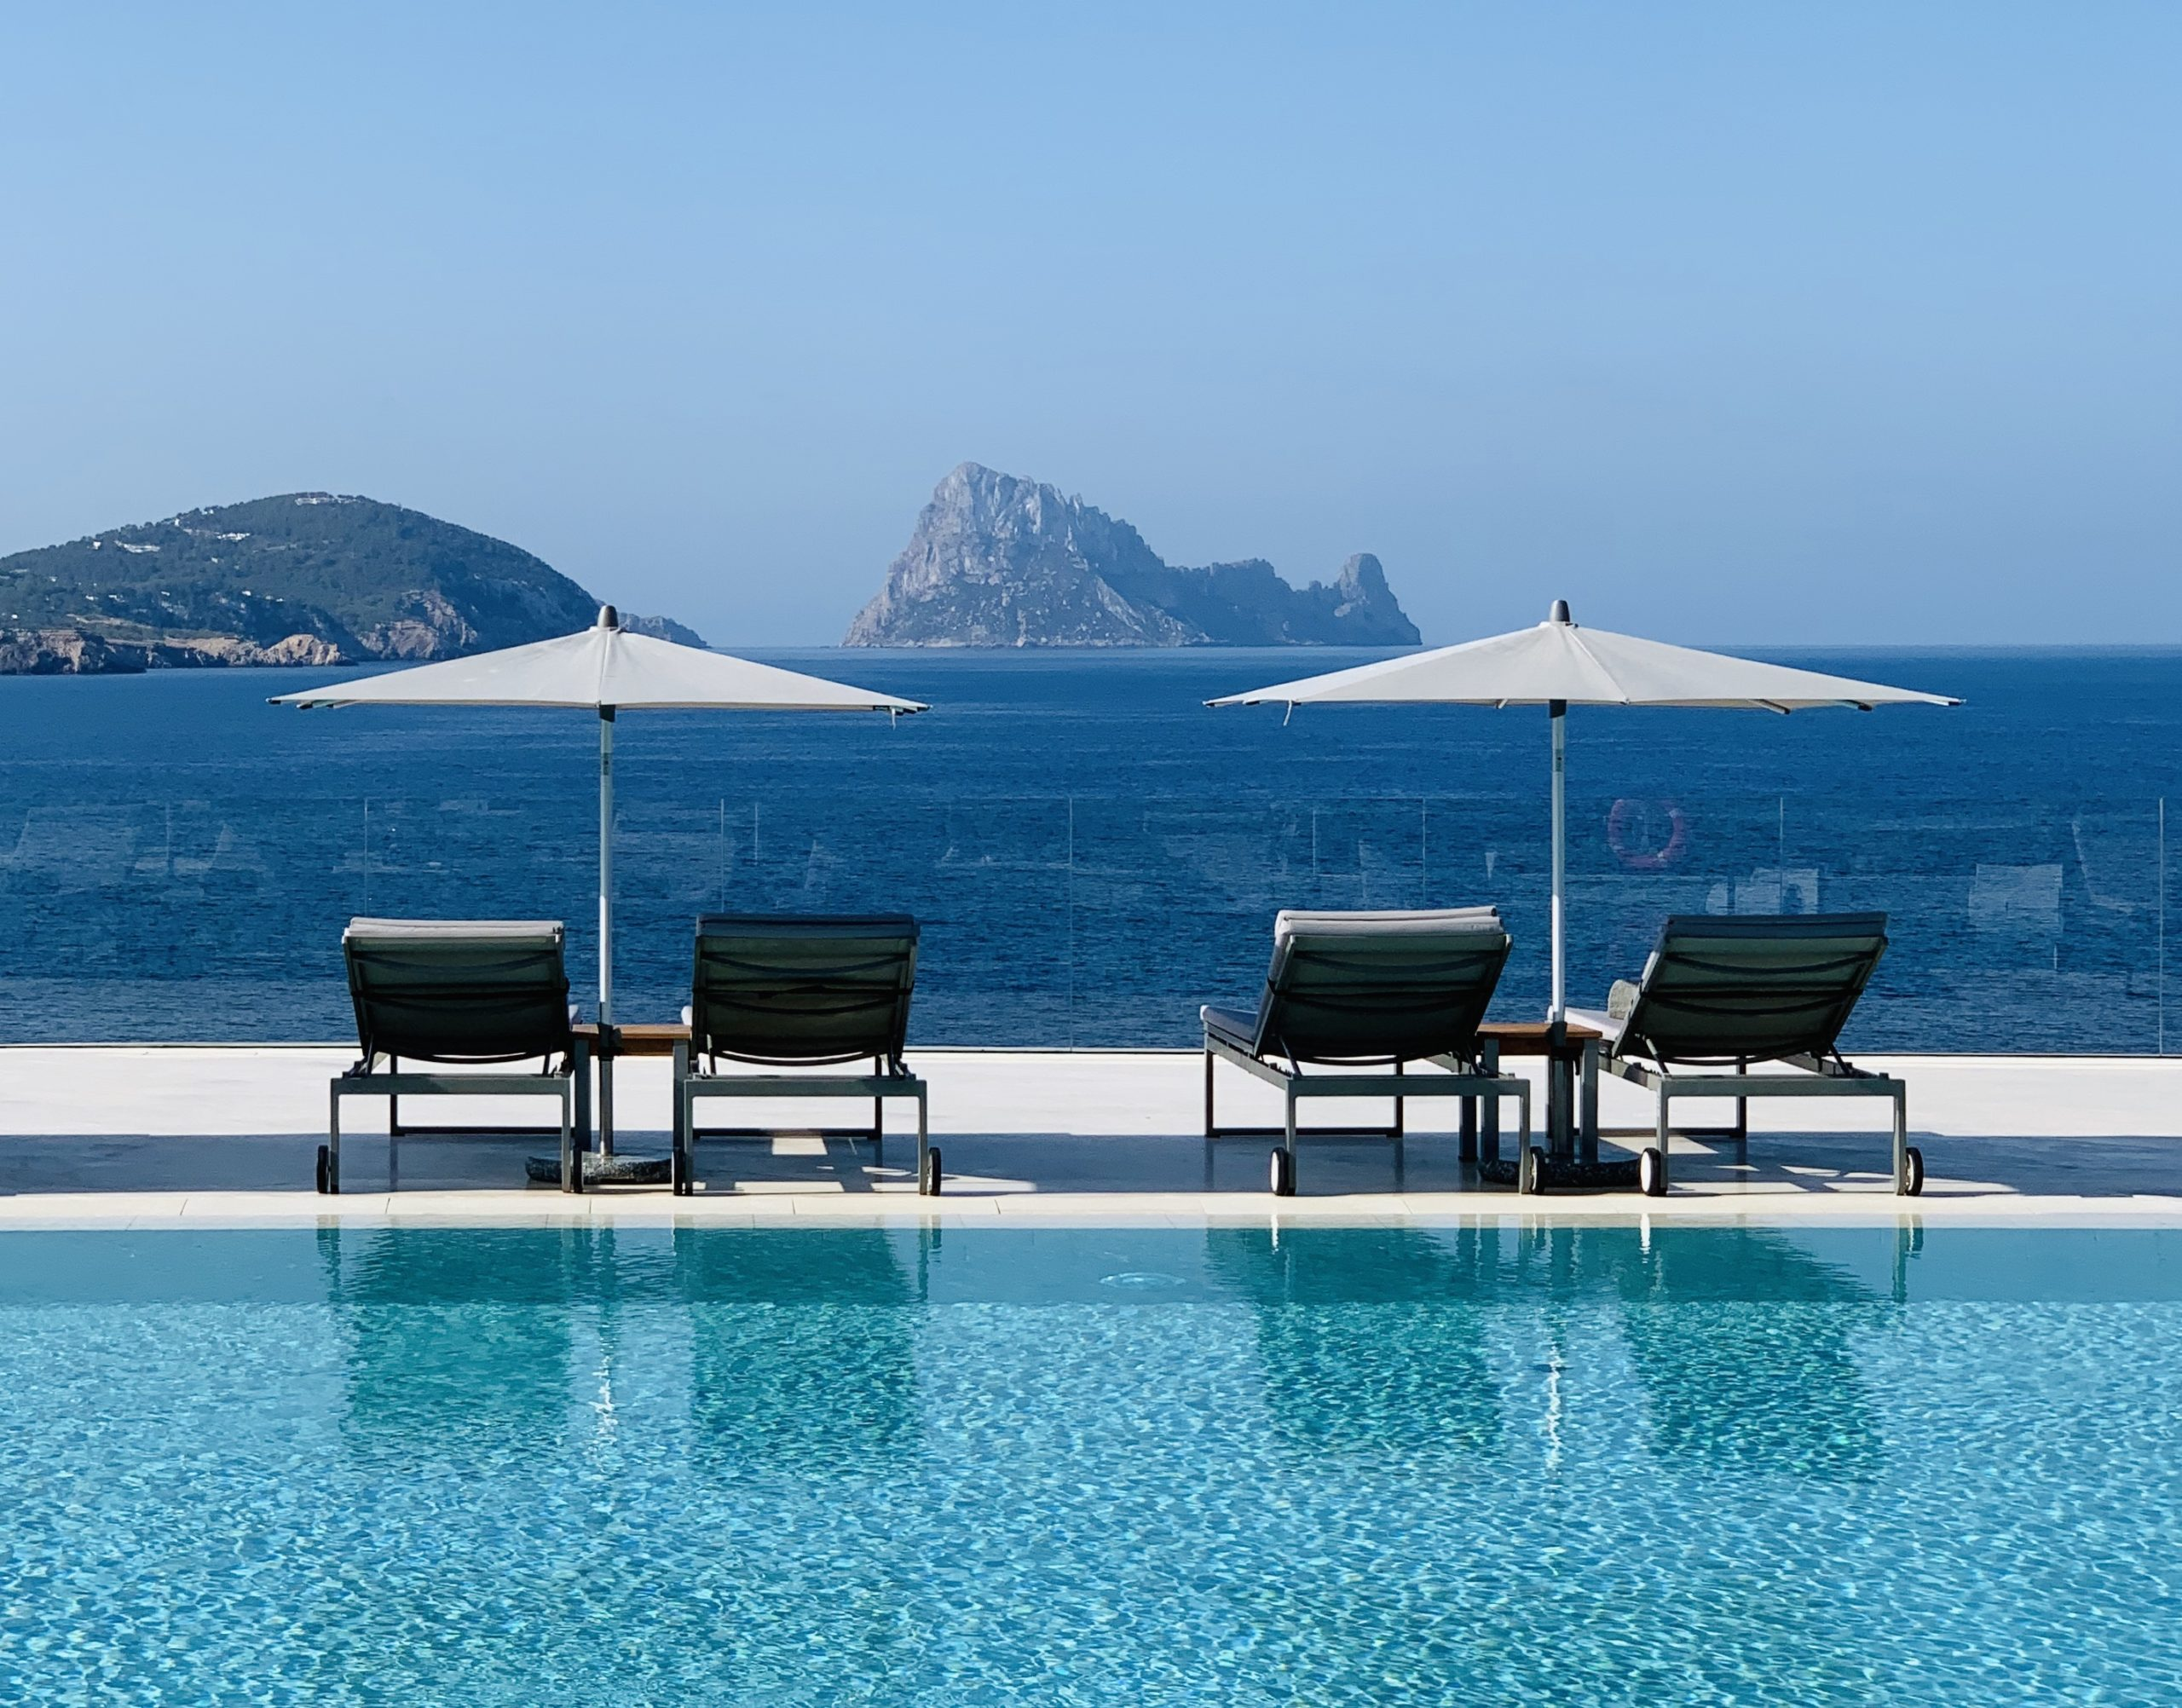 Infinity Pool Bar 7Pines Kempinski Ibiza 2020 02